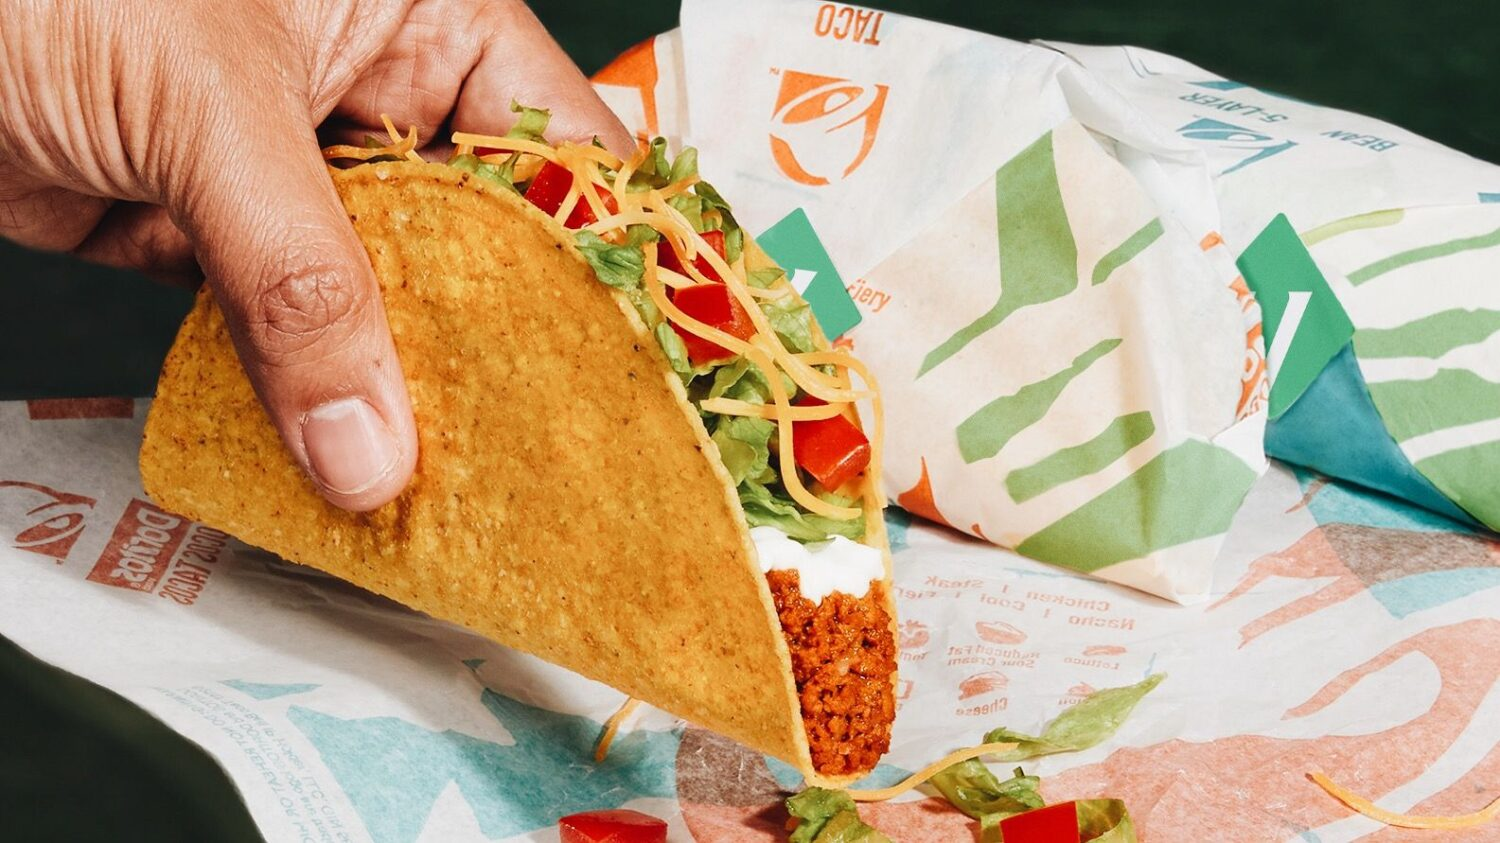 Taco Bell Is Trialing Vegan Beef. And That's Only the Beginning.